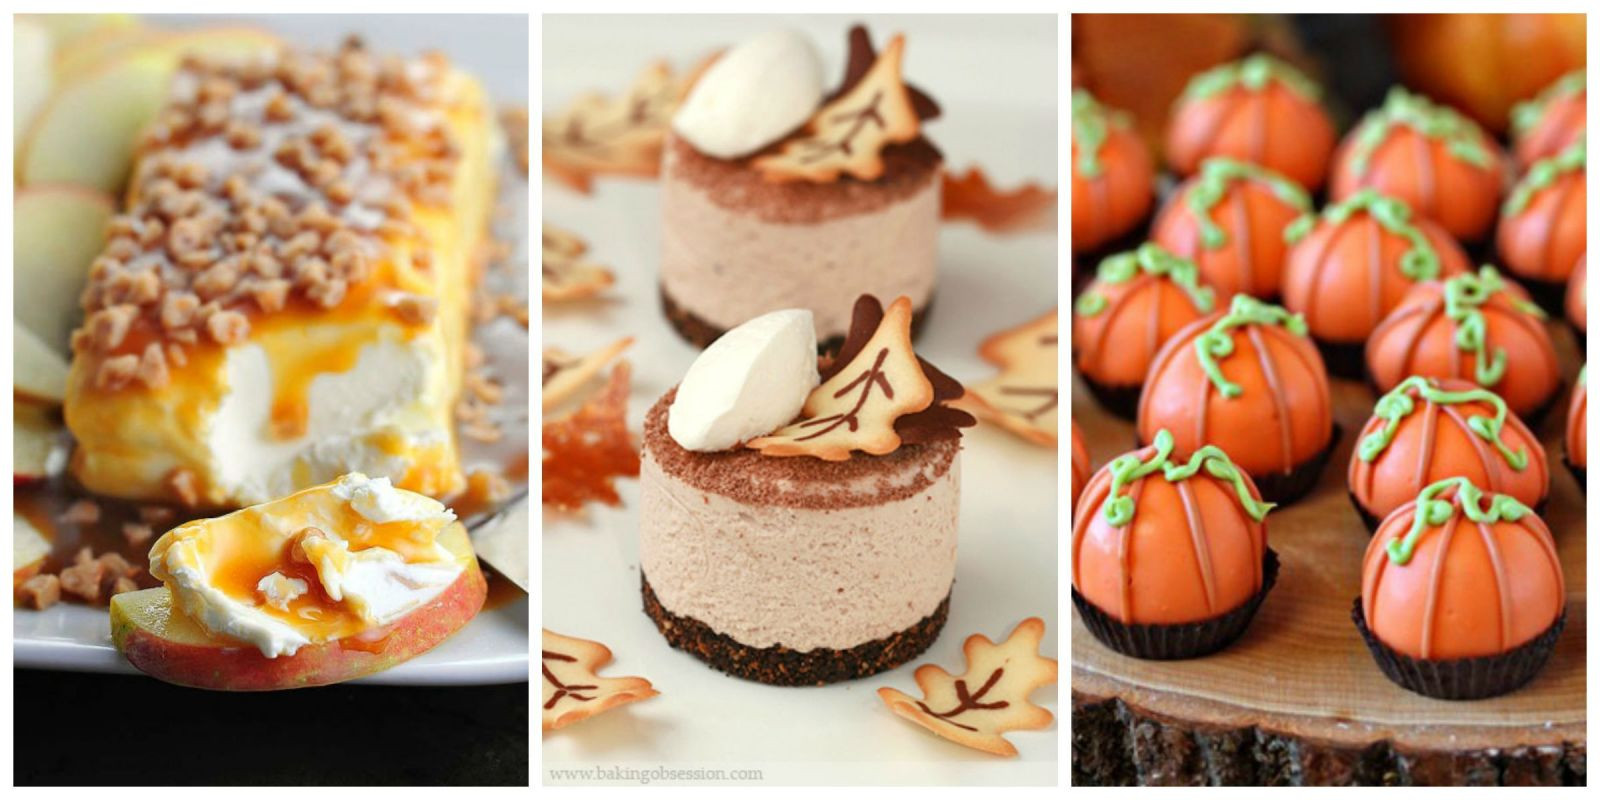 Fun Fall Desserts  35 Easy Fall Dessert Recipes Best Treats for Autumn Parties